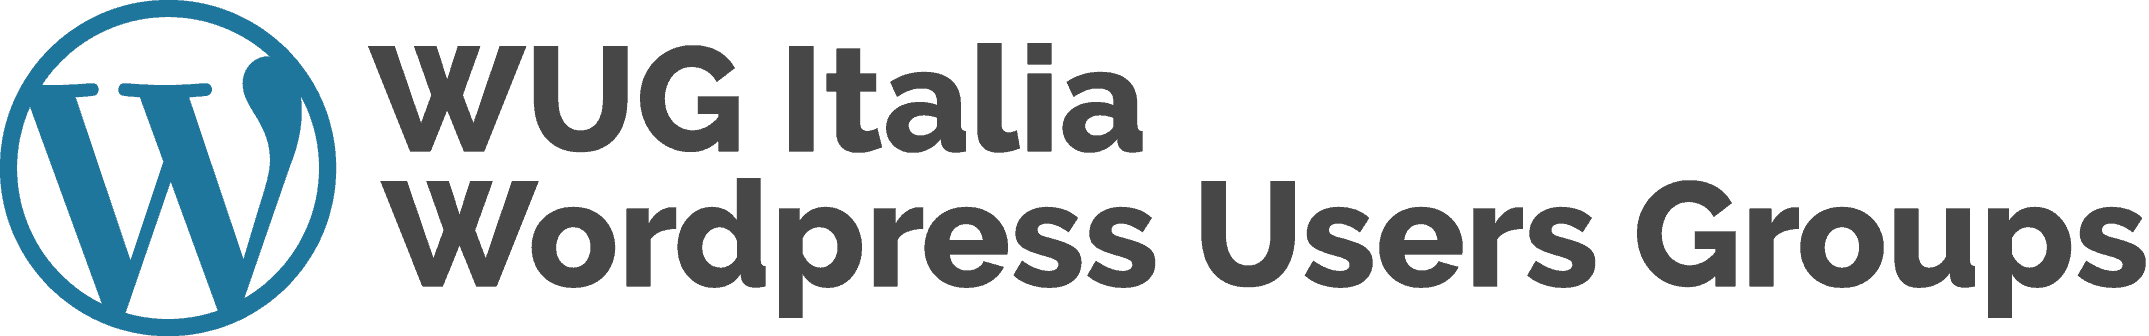 WUG Italia, Wordpress community Italiana